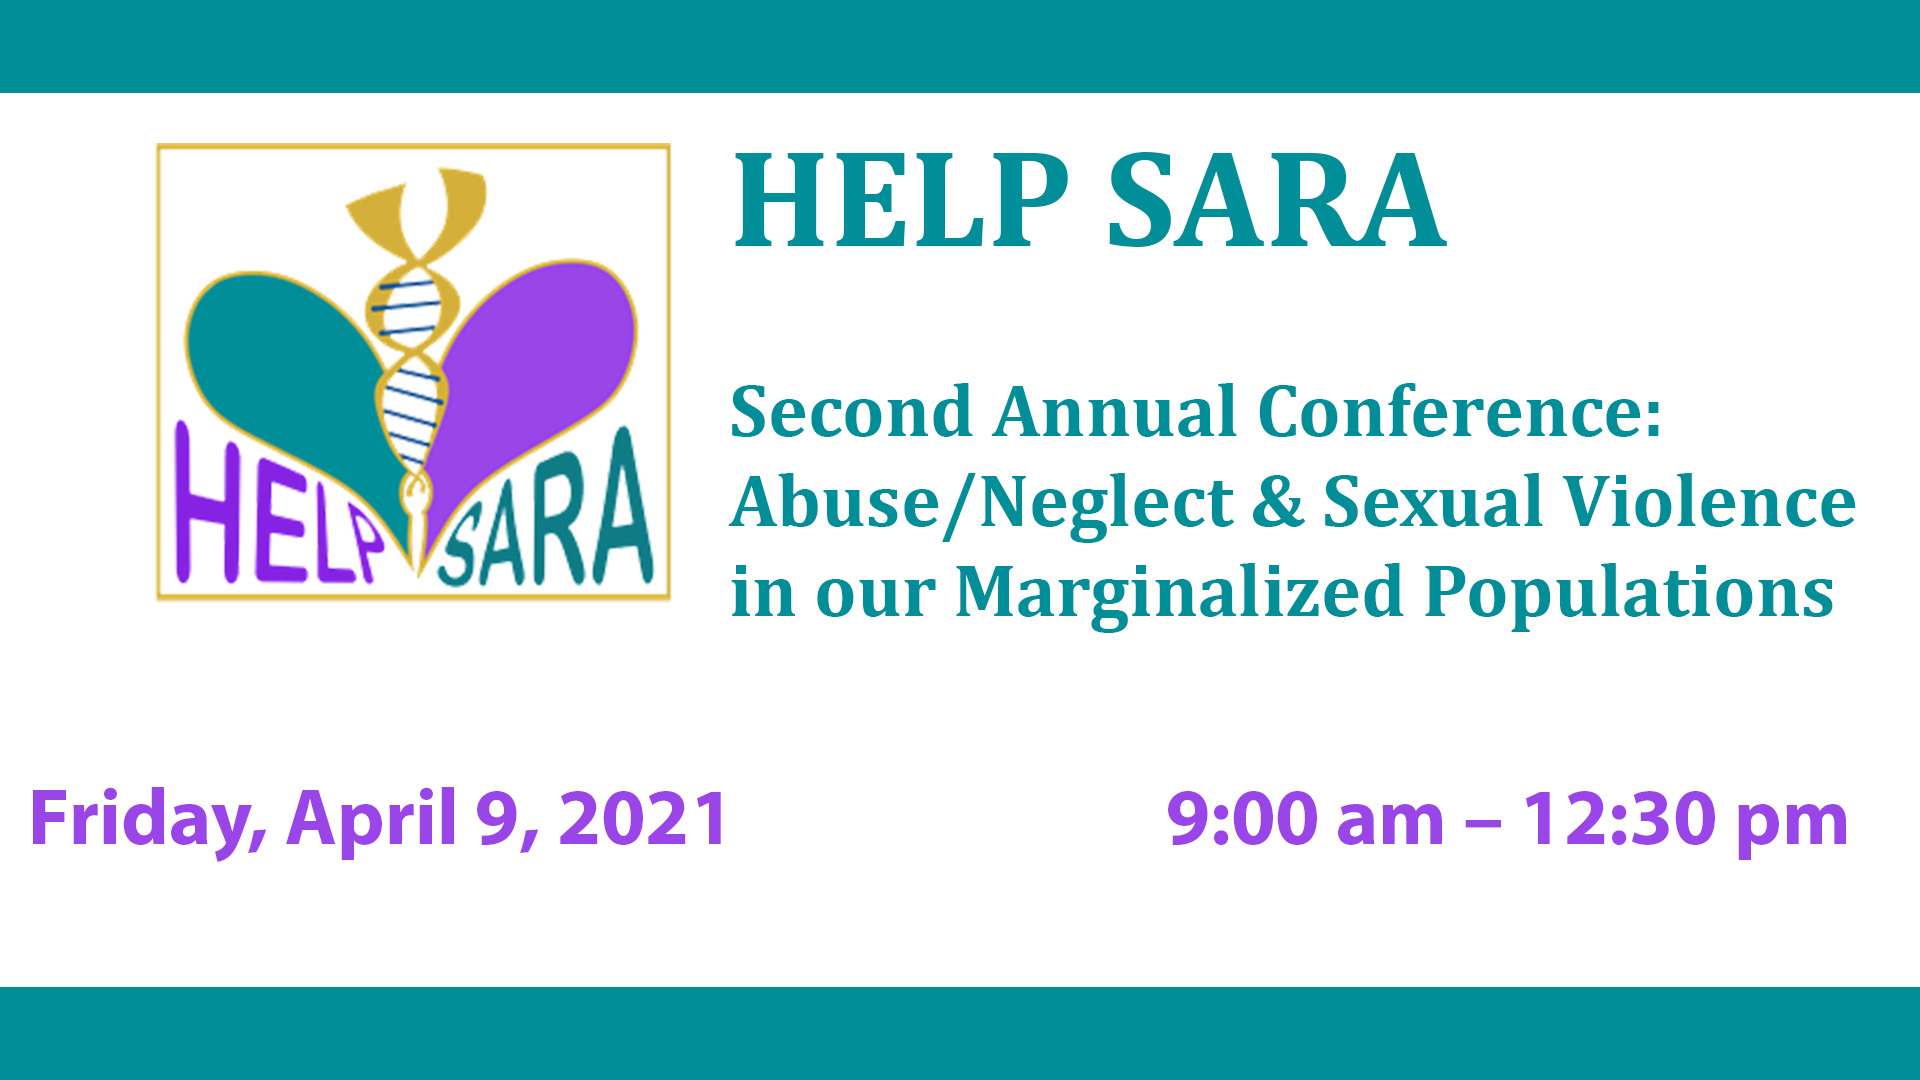 image for HELP SARA Second Annual Conference